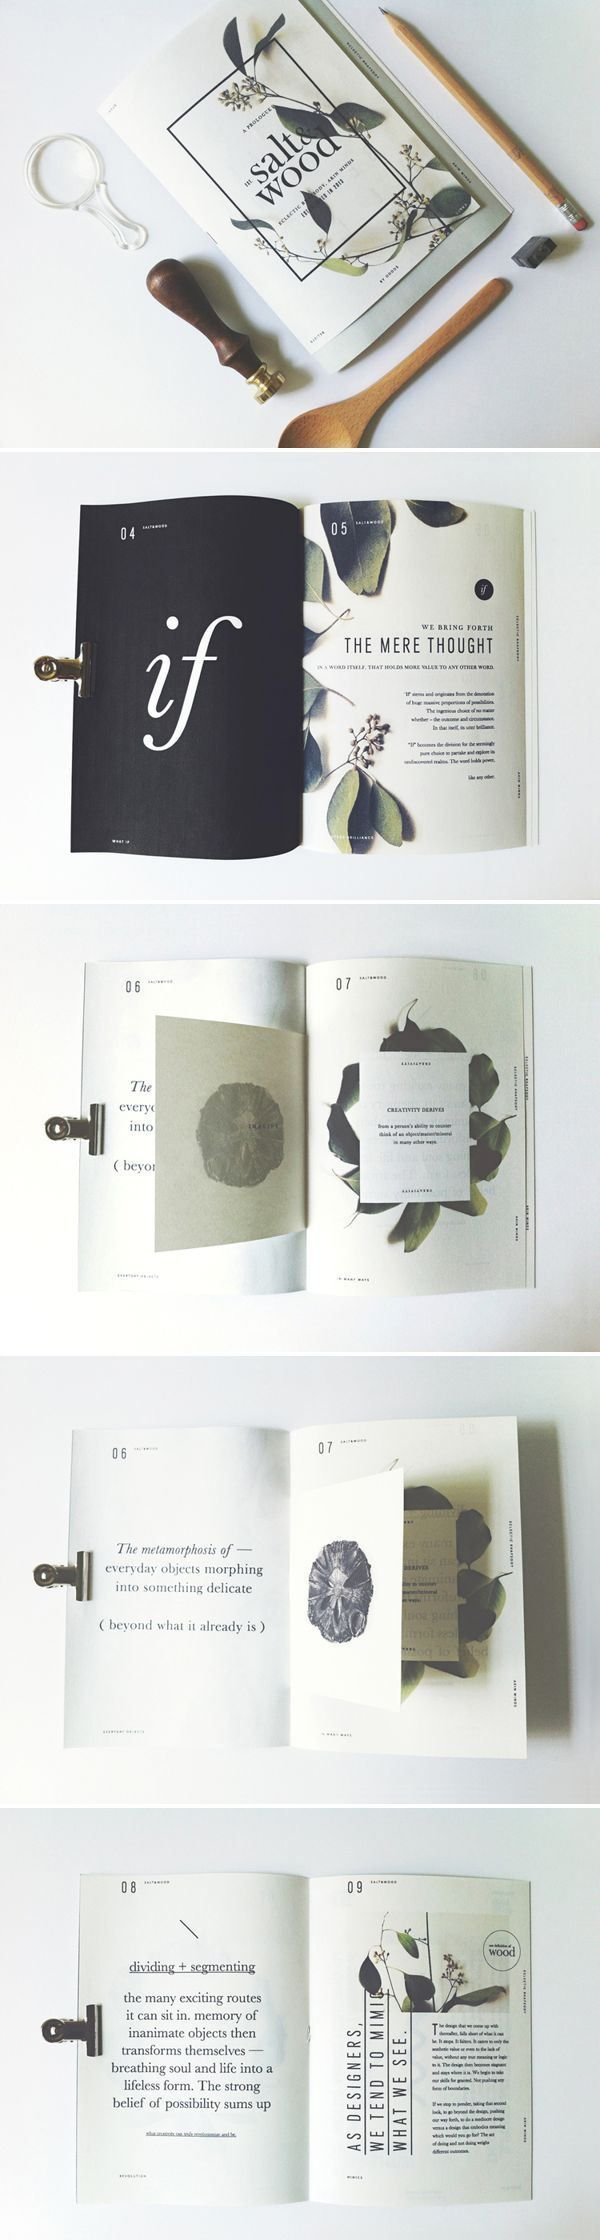 Typography 花草植物系列 刊物編排 | MyDesy 淘靈感 different from the other pin